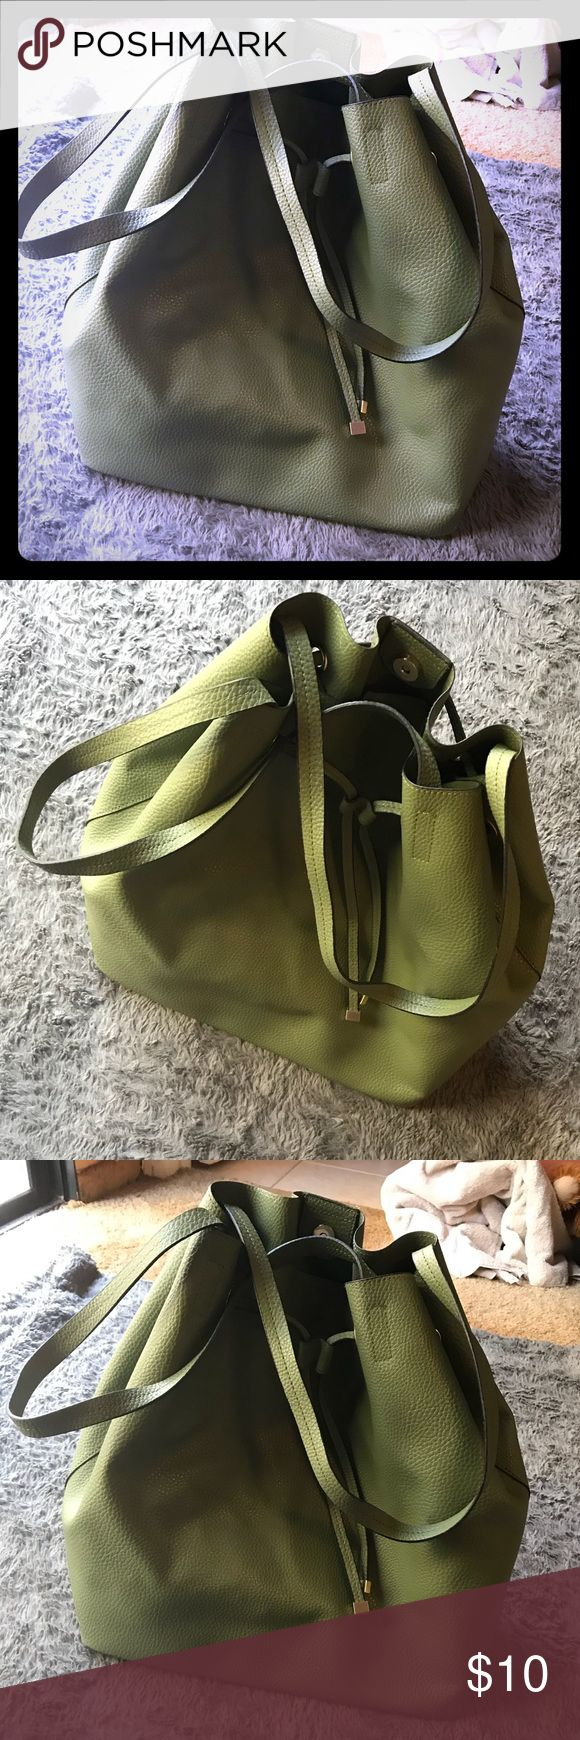 Olive Green Target Purse Used Only Once Super cute purse used only once great to bundle:)! Merona Bags Shoulder Bags